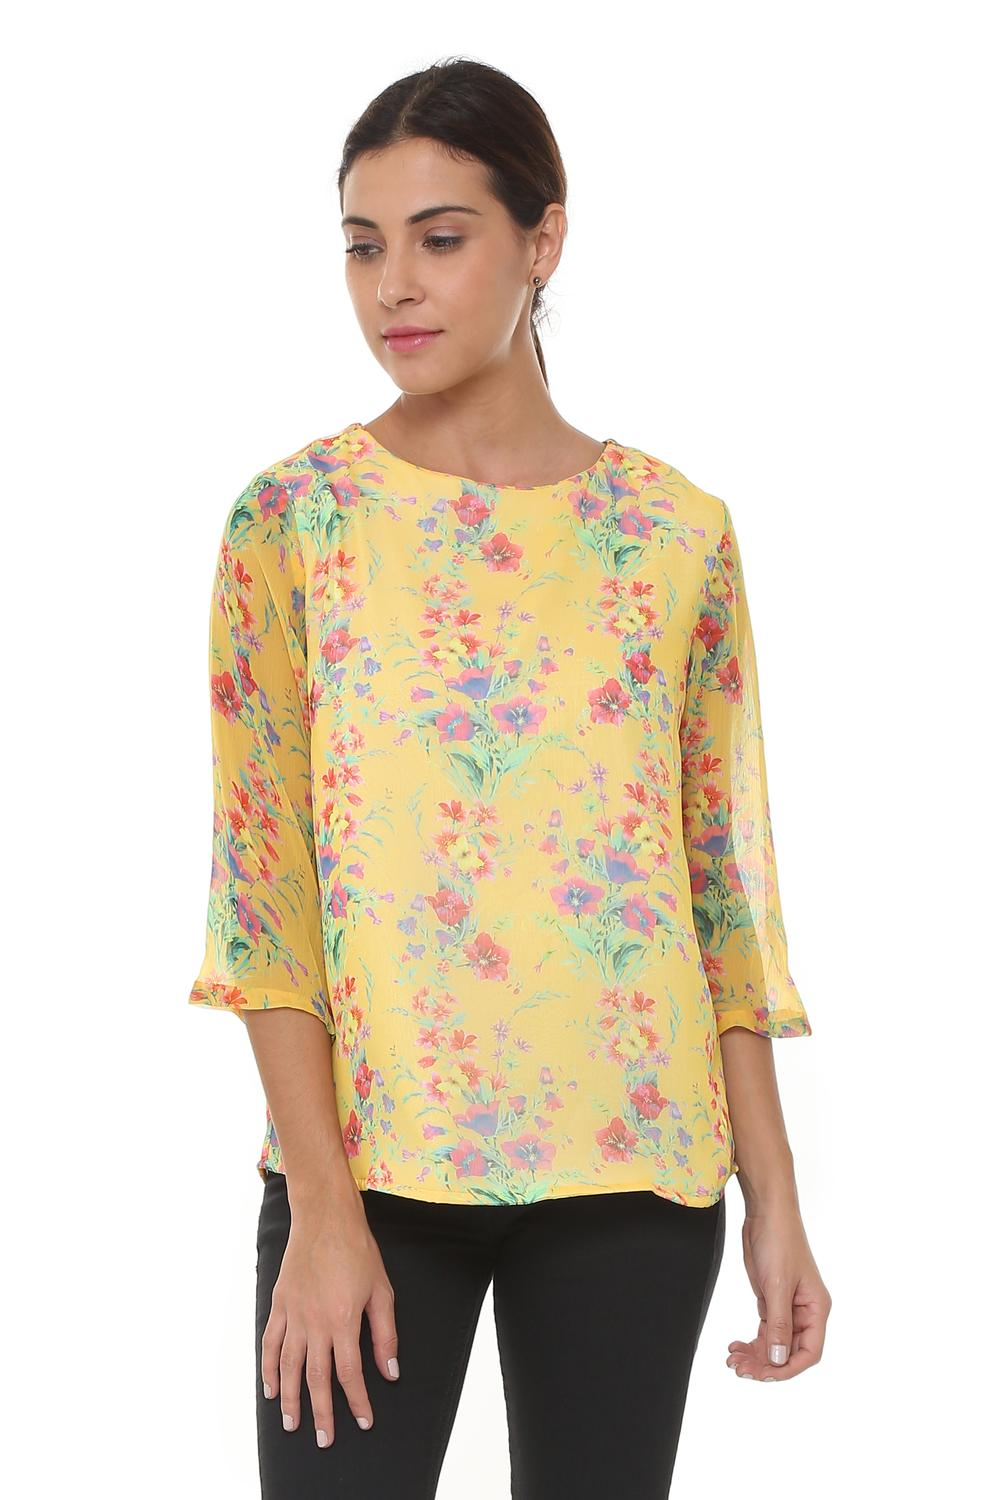 2fdb17b811980 Solly Tees & Tops, Allen Solly Yellow Top for Women at Planetfashion.in